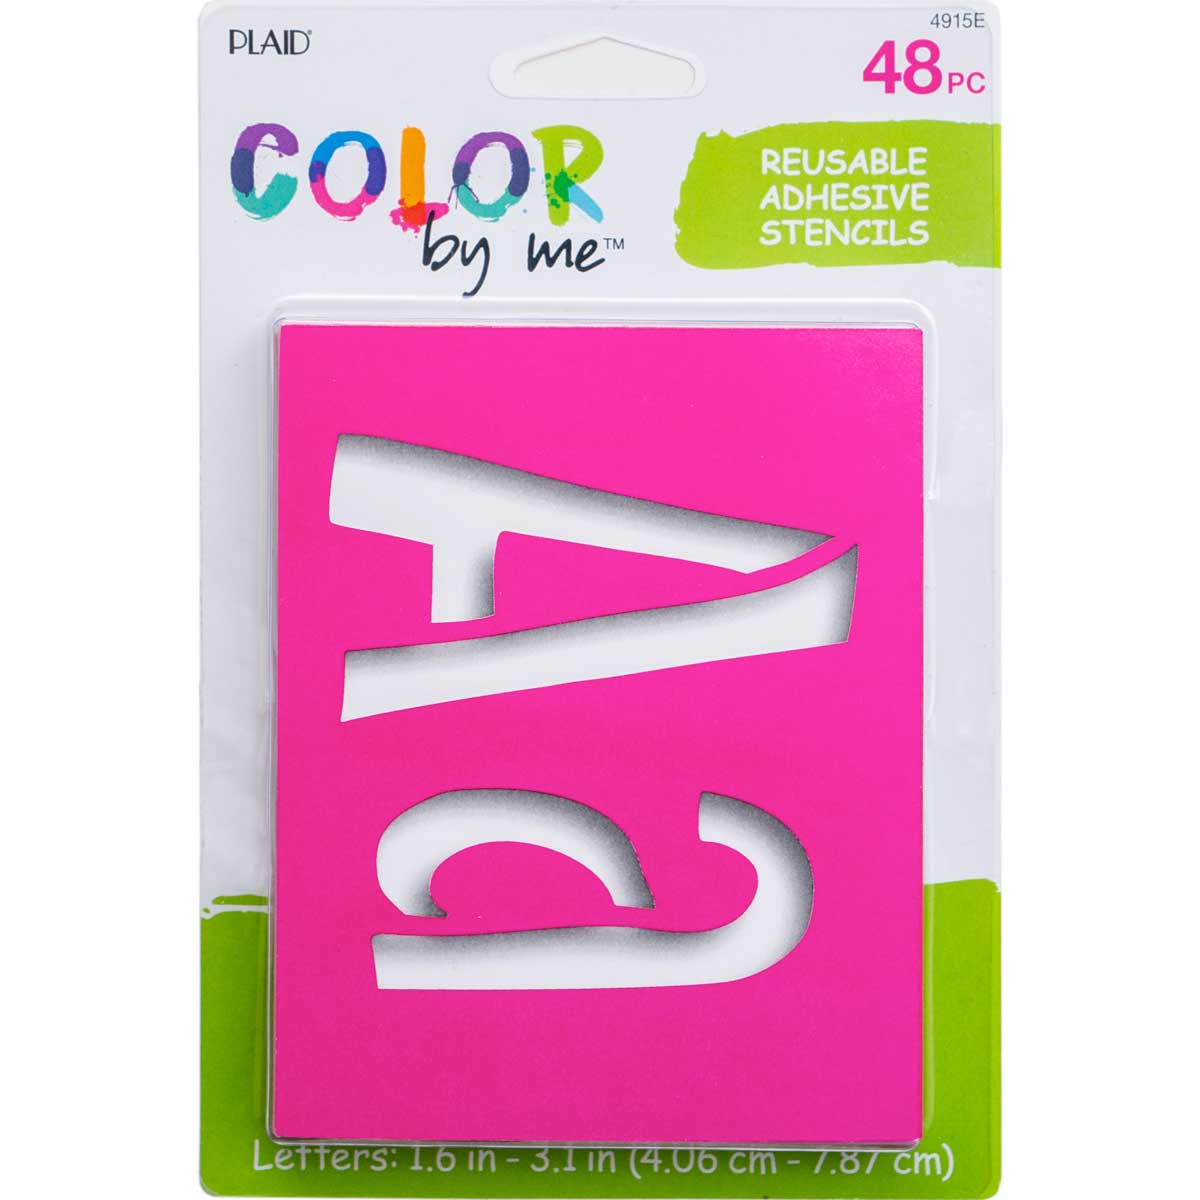 Plaid ® Color By Me™ Adhesive Stencils - Sweets & Treats Letters - 4915E